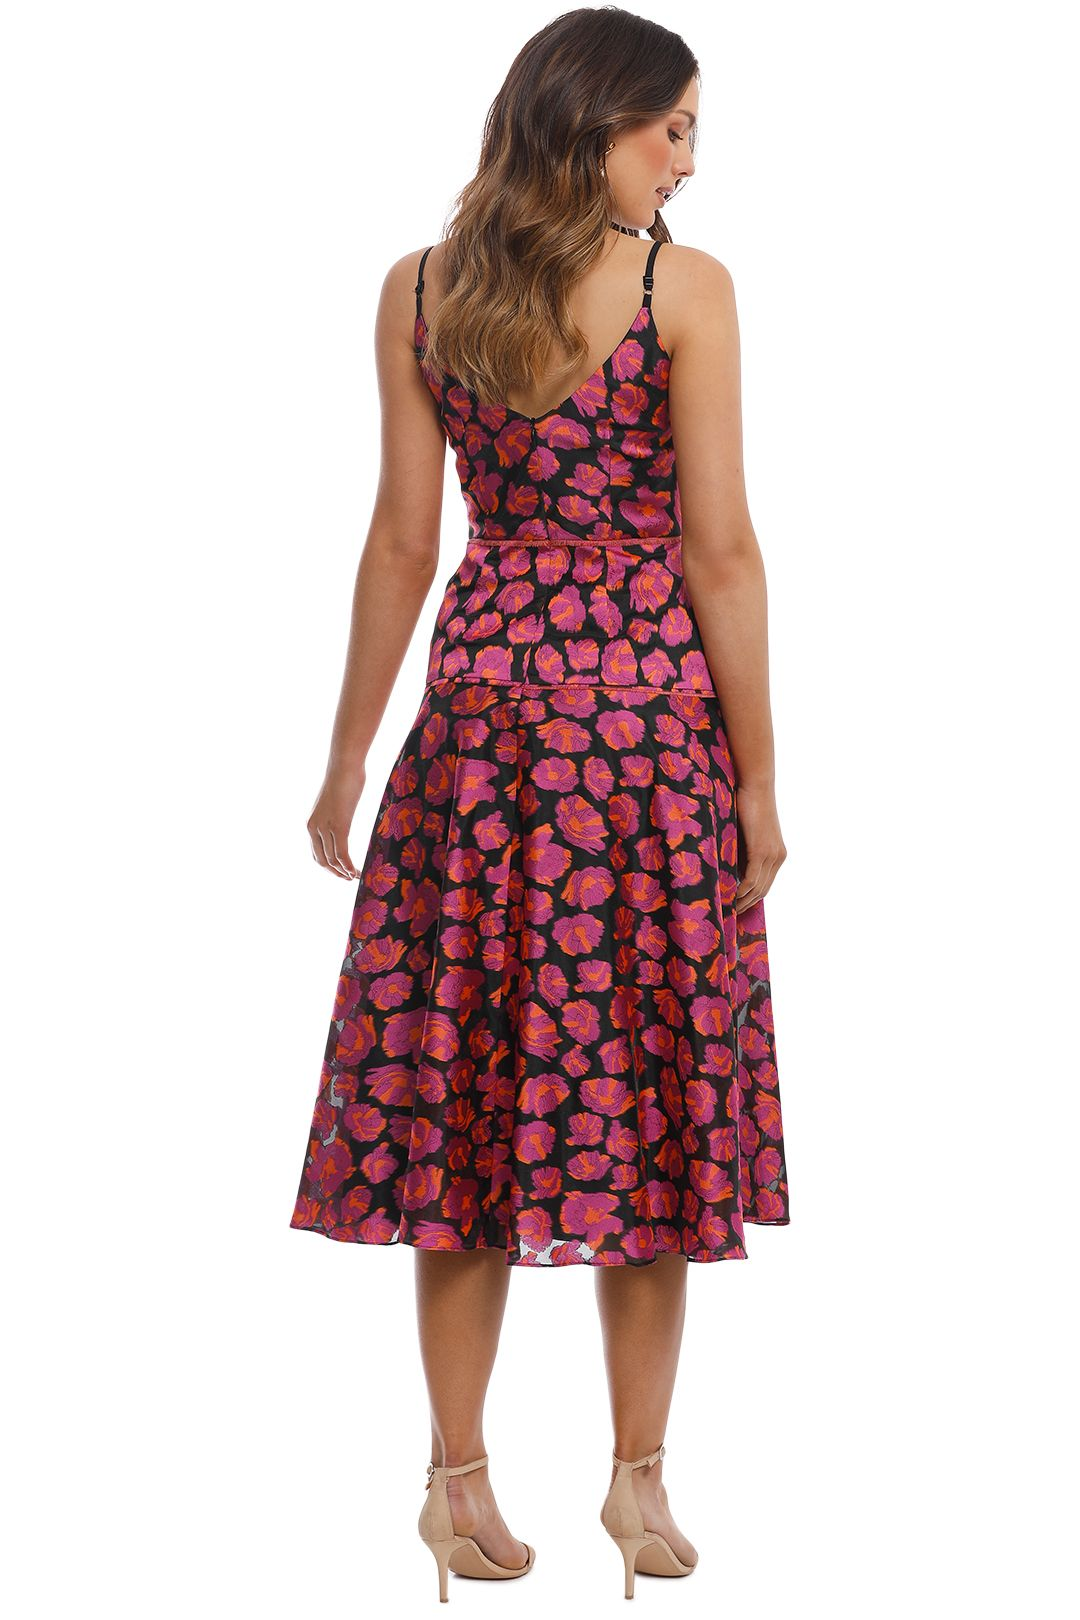 Moss and Spy - Lysander Dress - Pink Multi - Back